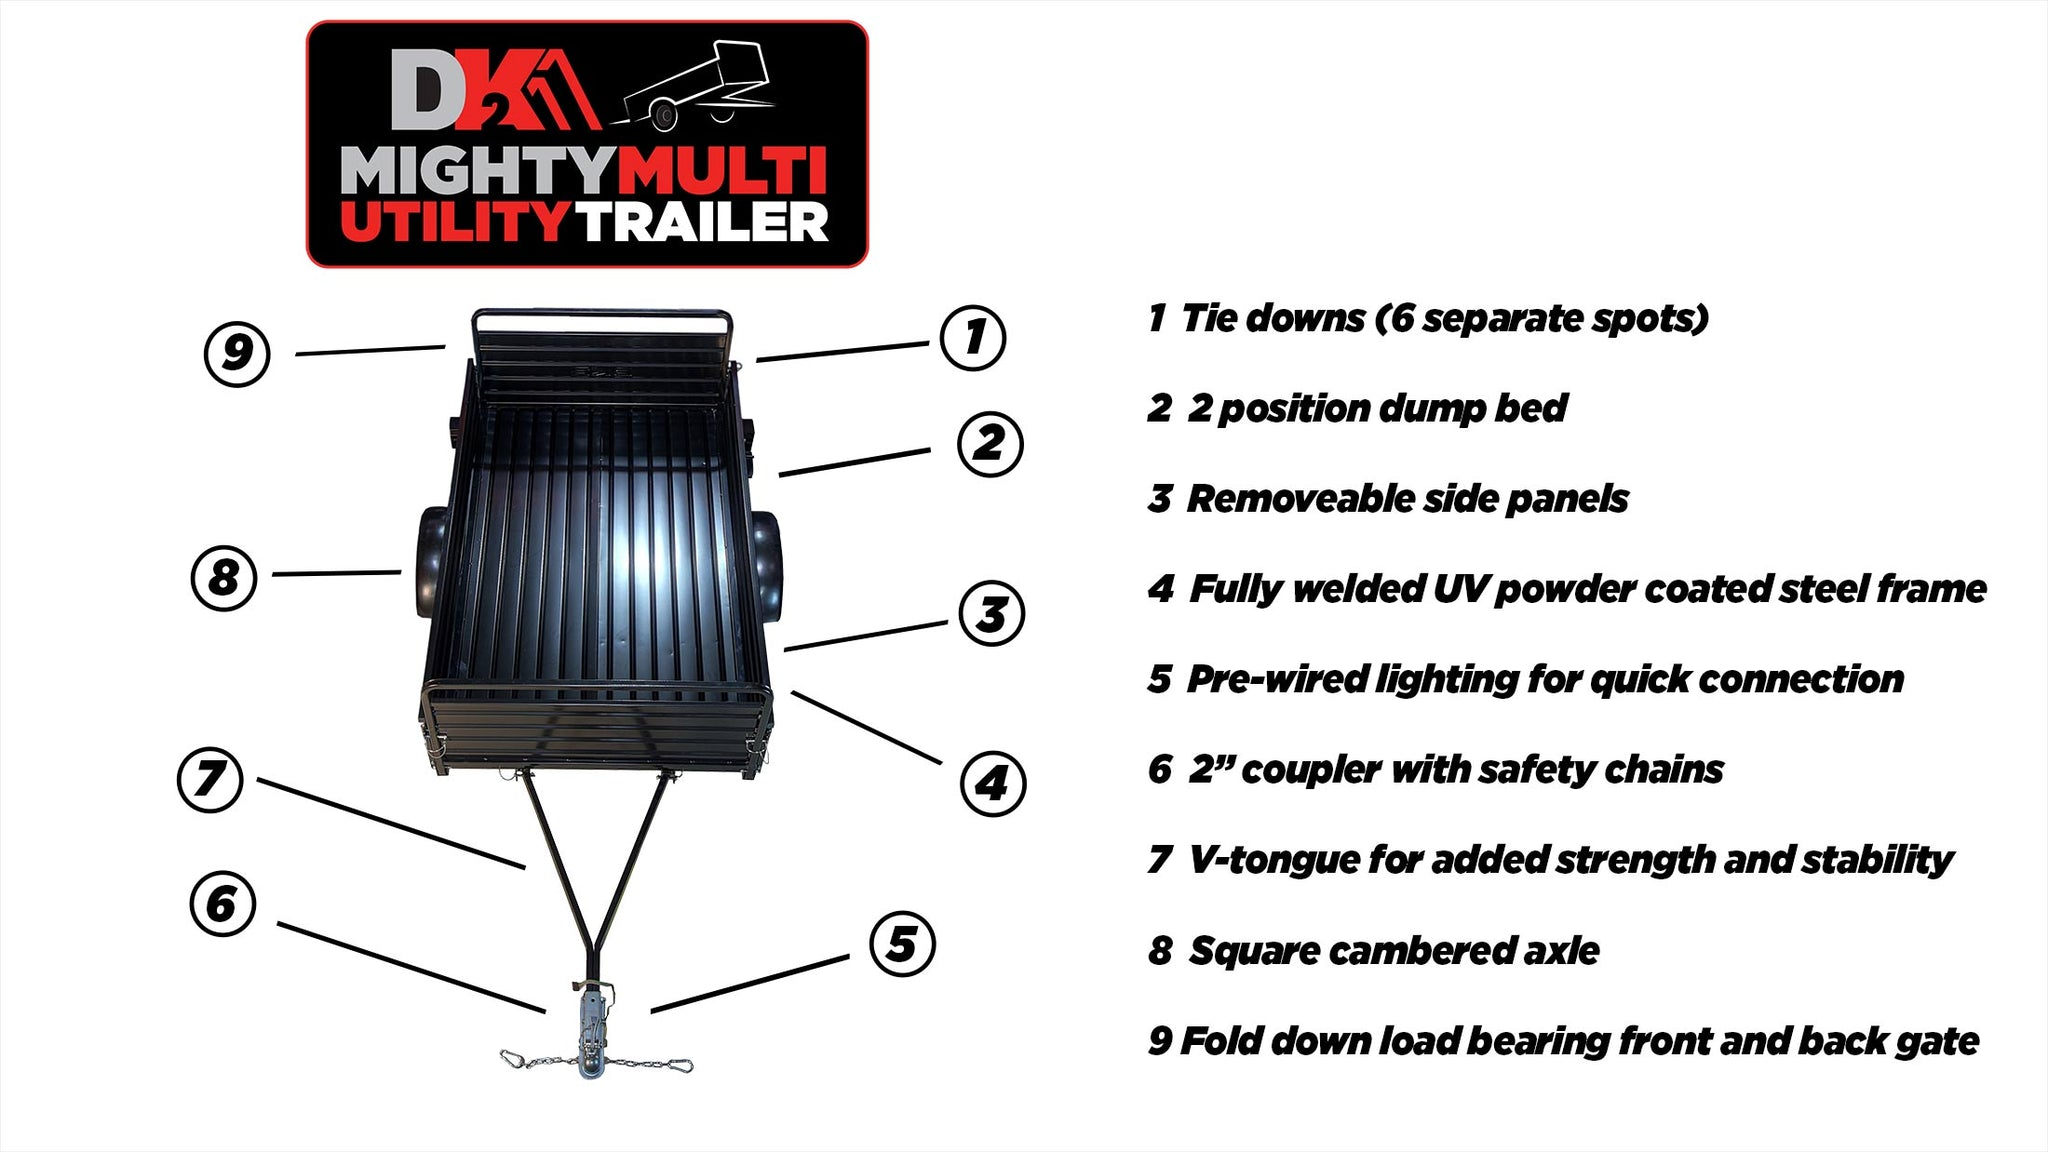 5ft x 7ft Multi Purpose Utility Trailer Kits - Black Powder coated- MMT5X7